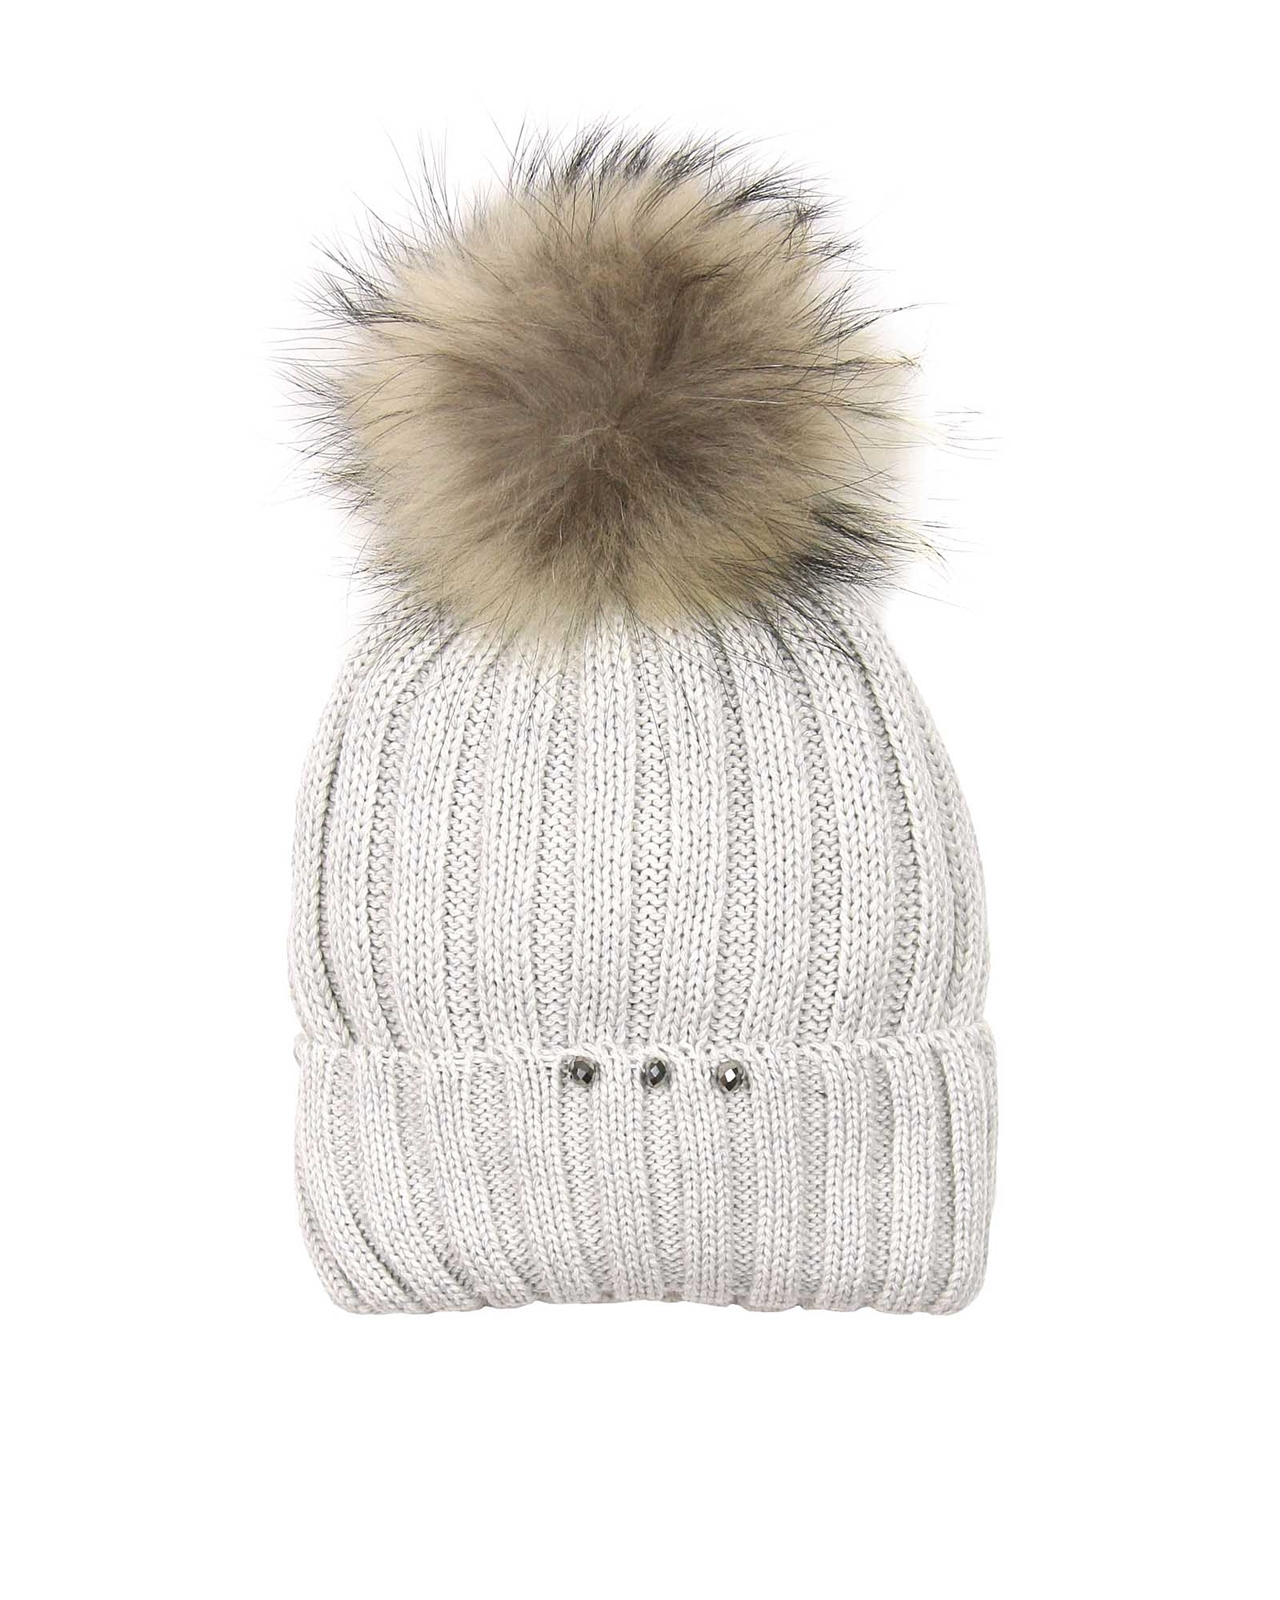 27f58be4bd1 Barbaras Girls Wool Beanie Hat in Grey with Racoon Pompom - Barbara ...